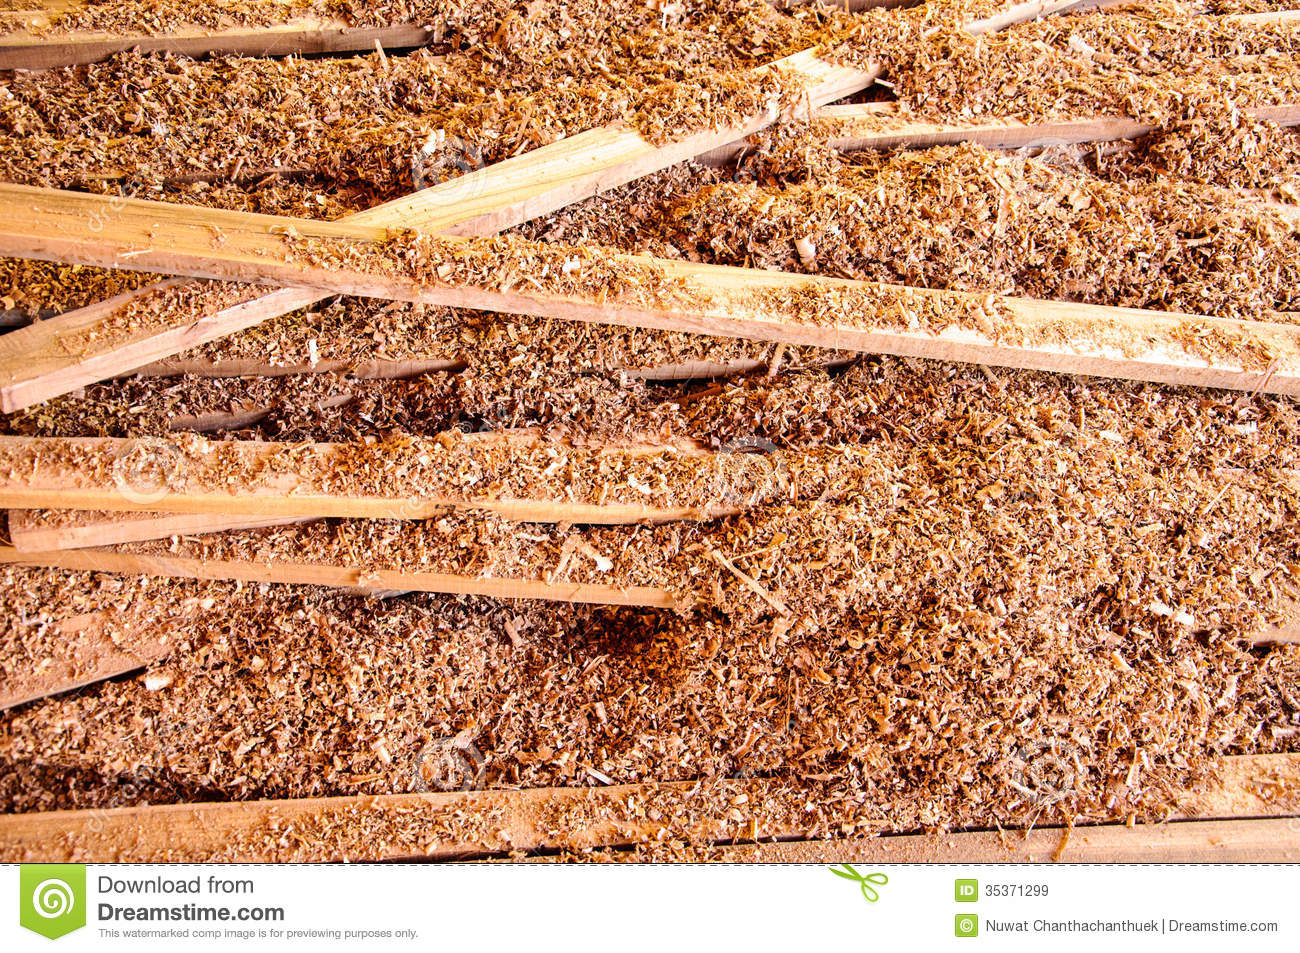 Wood and sawdust stock image of scattered build